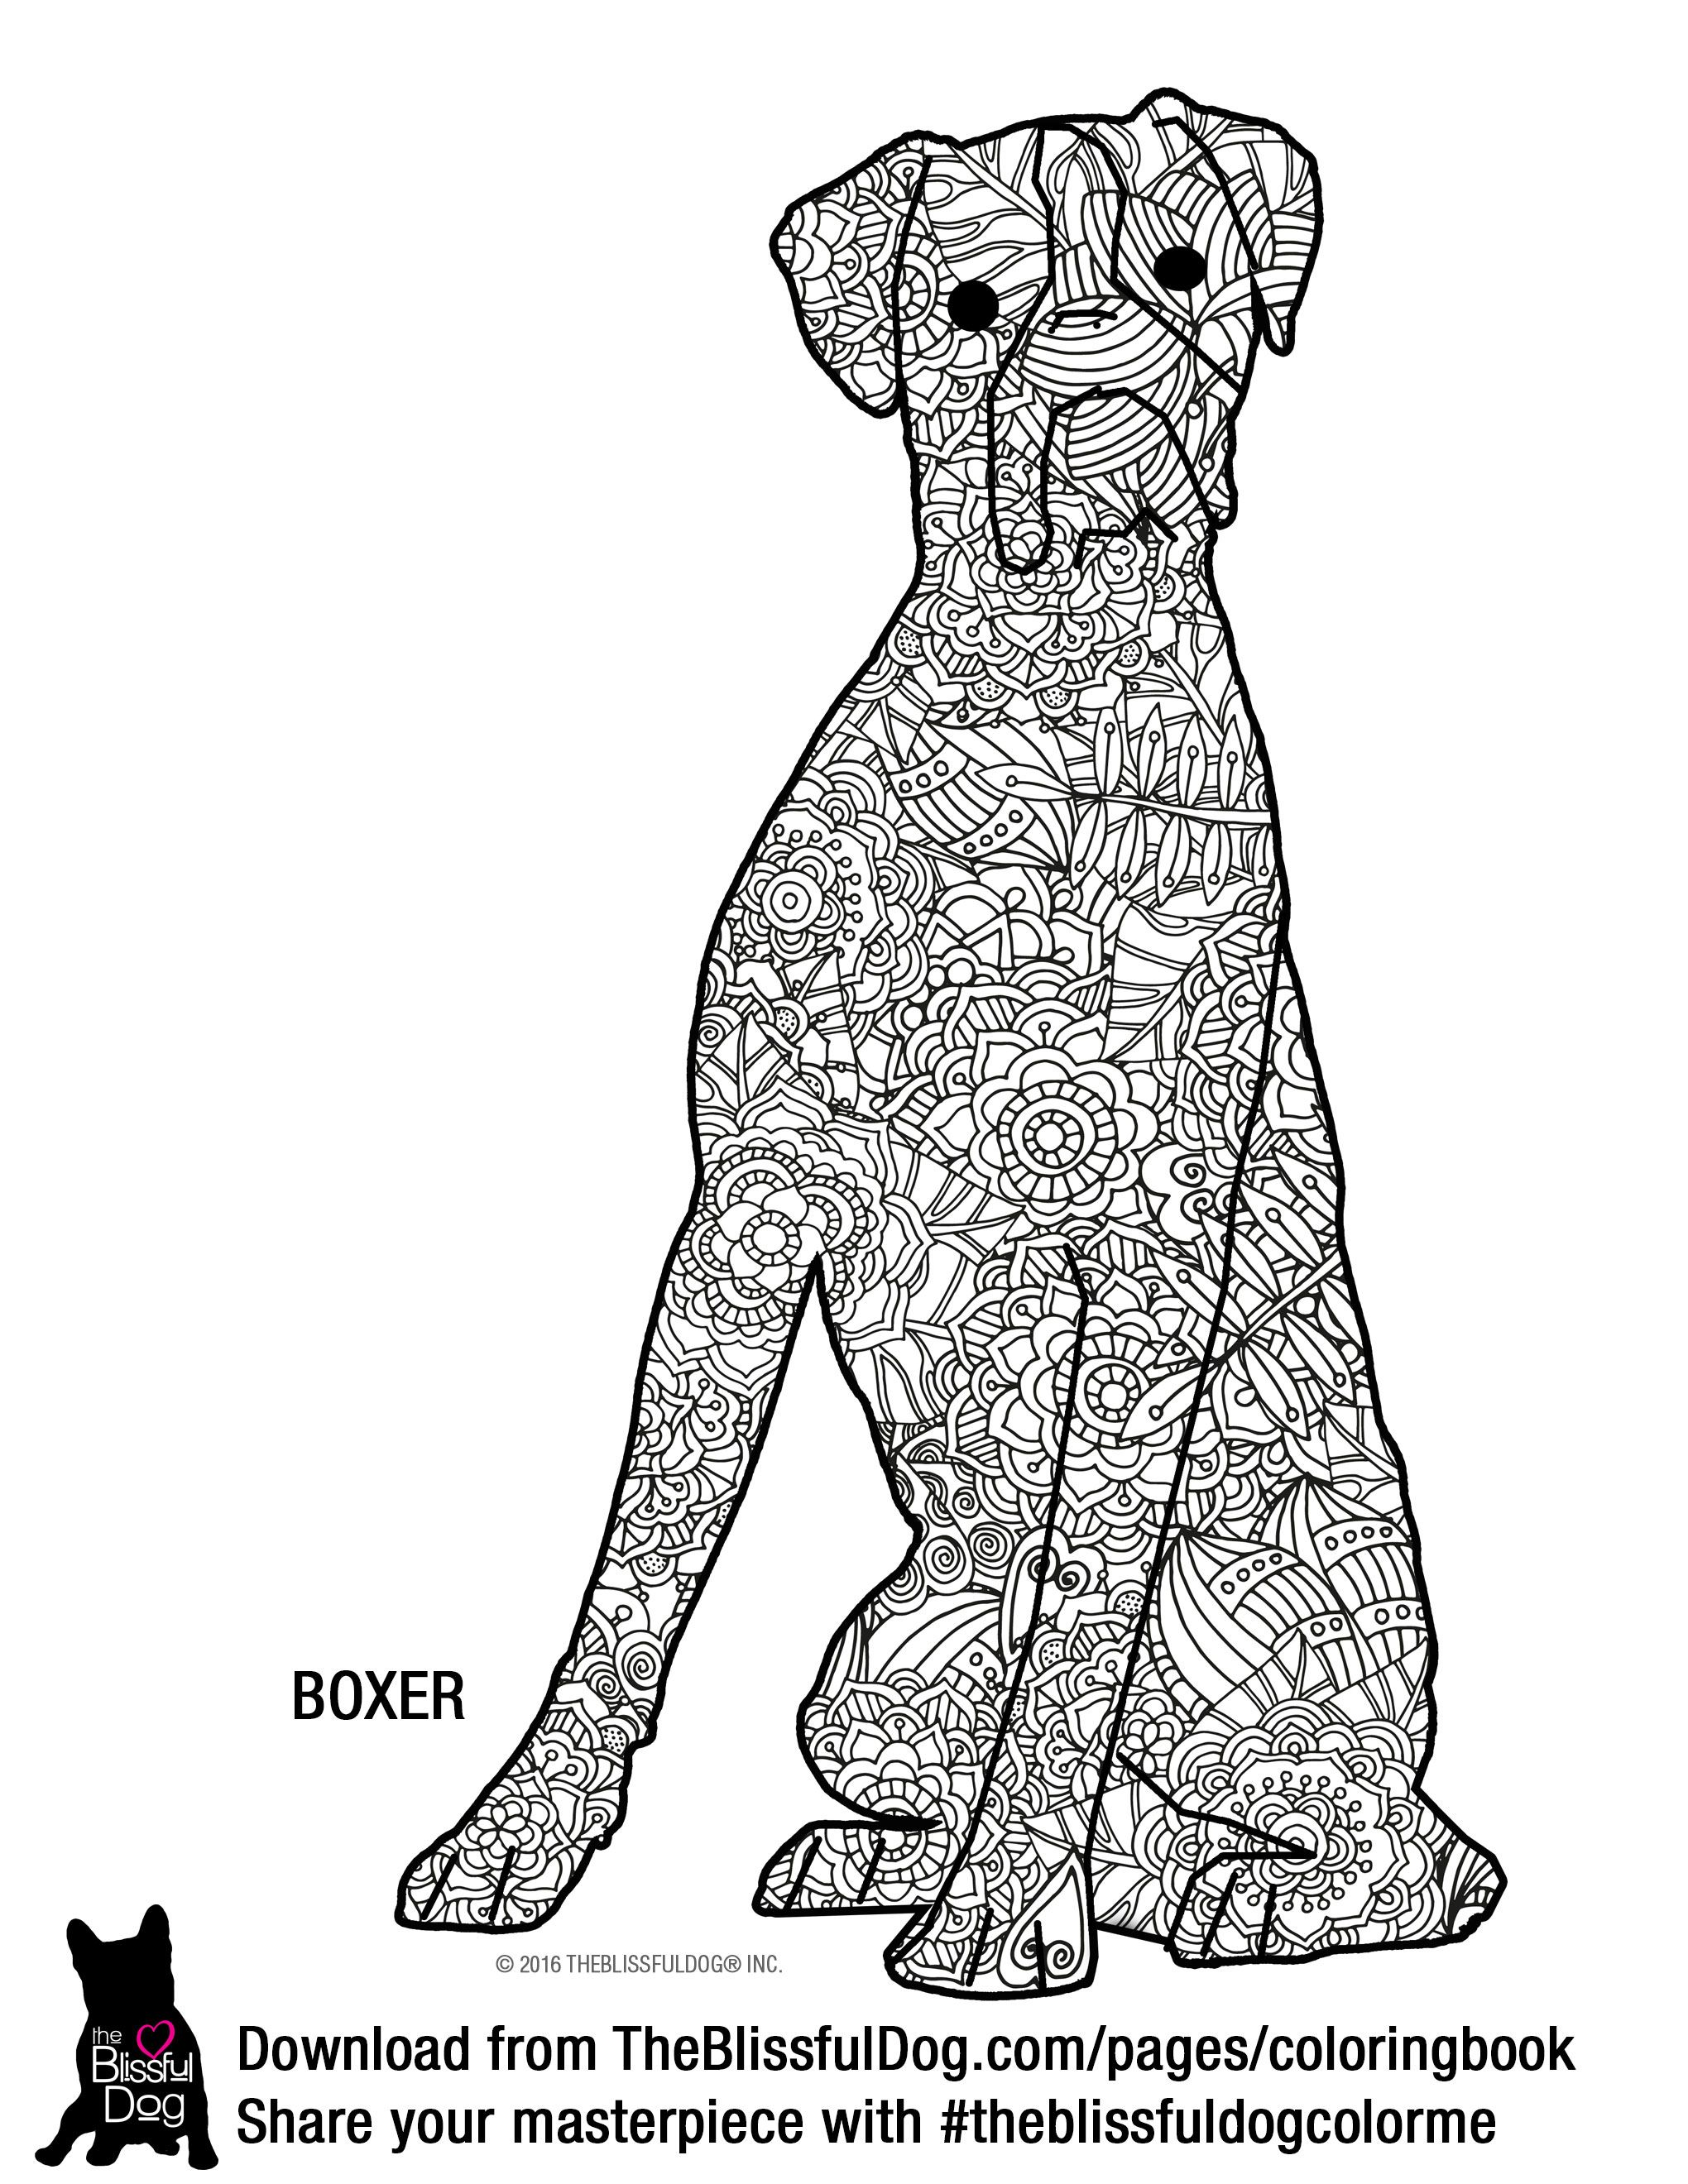 And The Boxer Coloring Book Page This Is A Harder One Hehehe